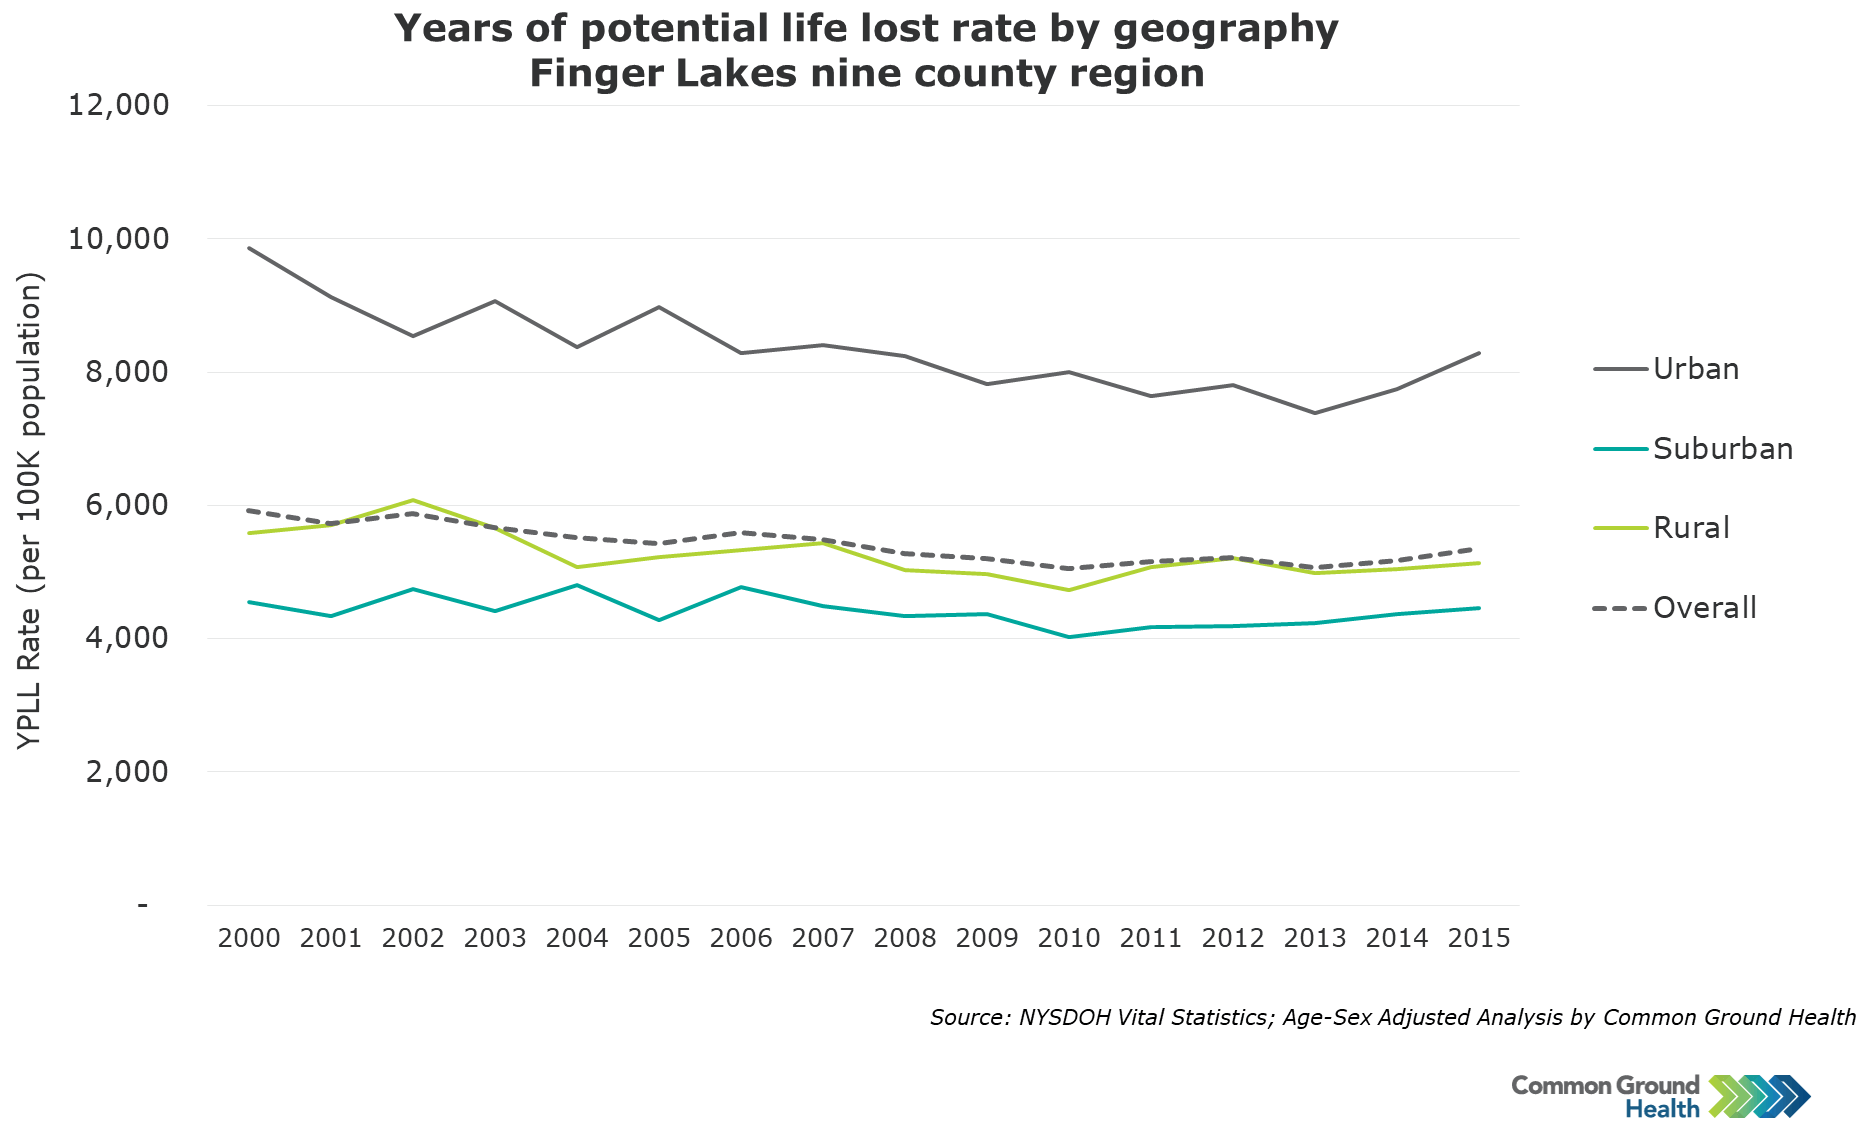 Years of Potential Life Lost Rate by Geography